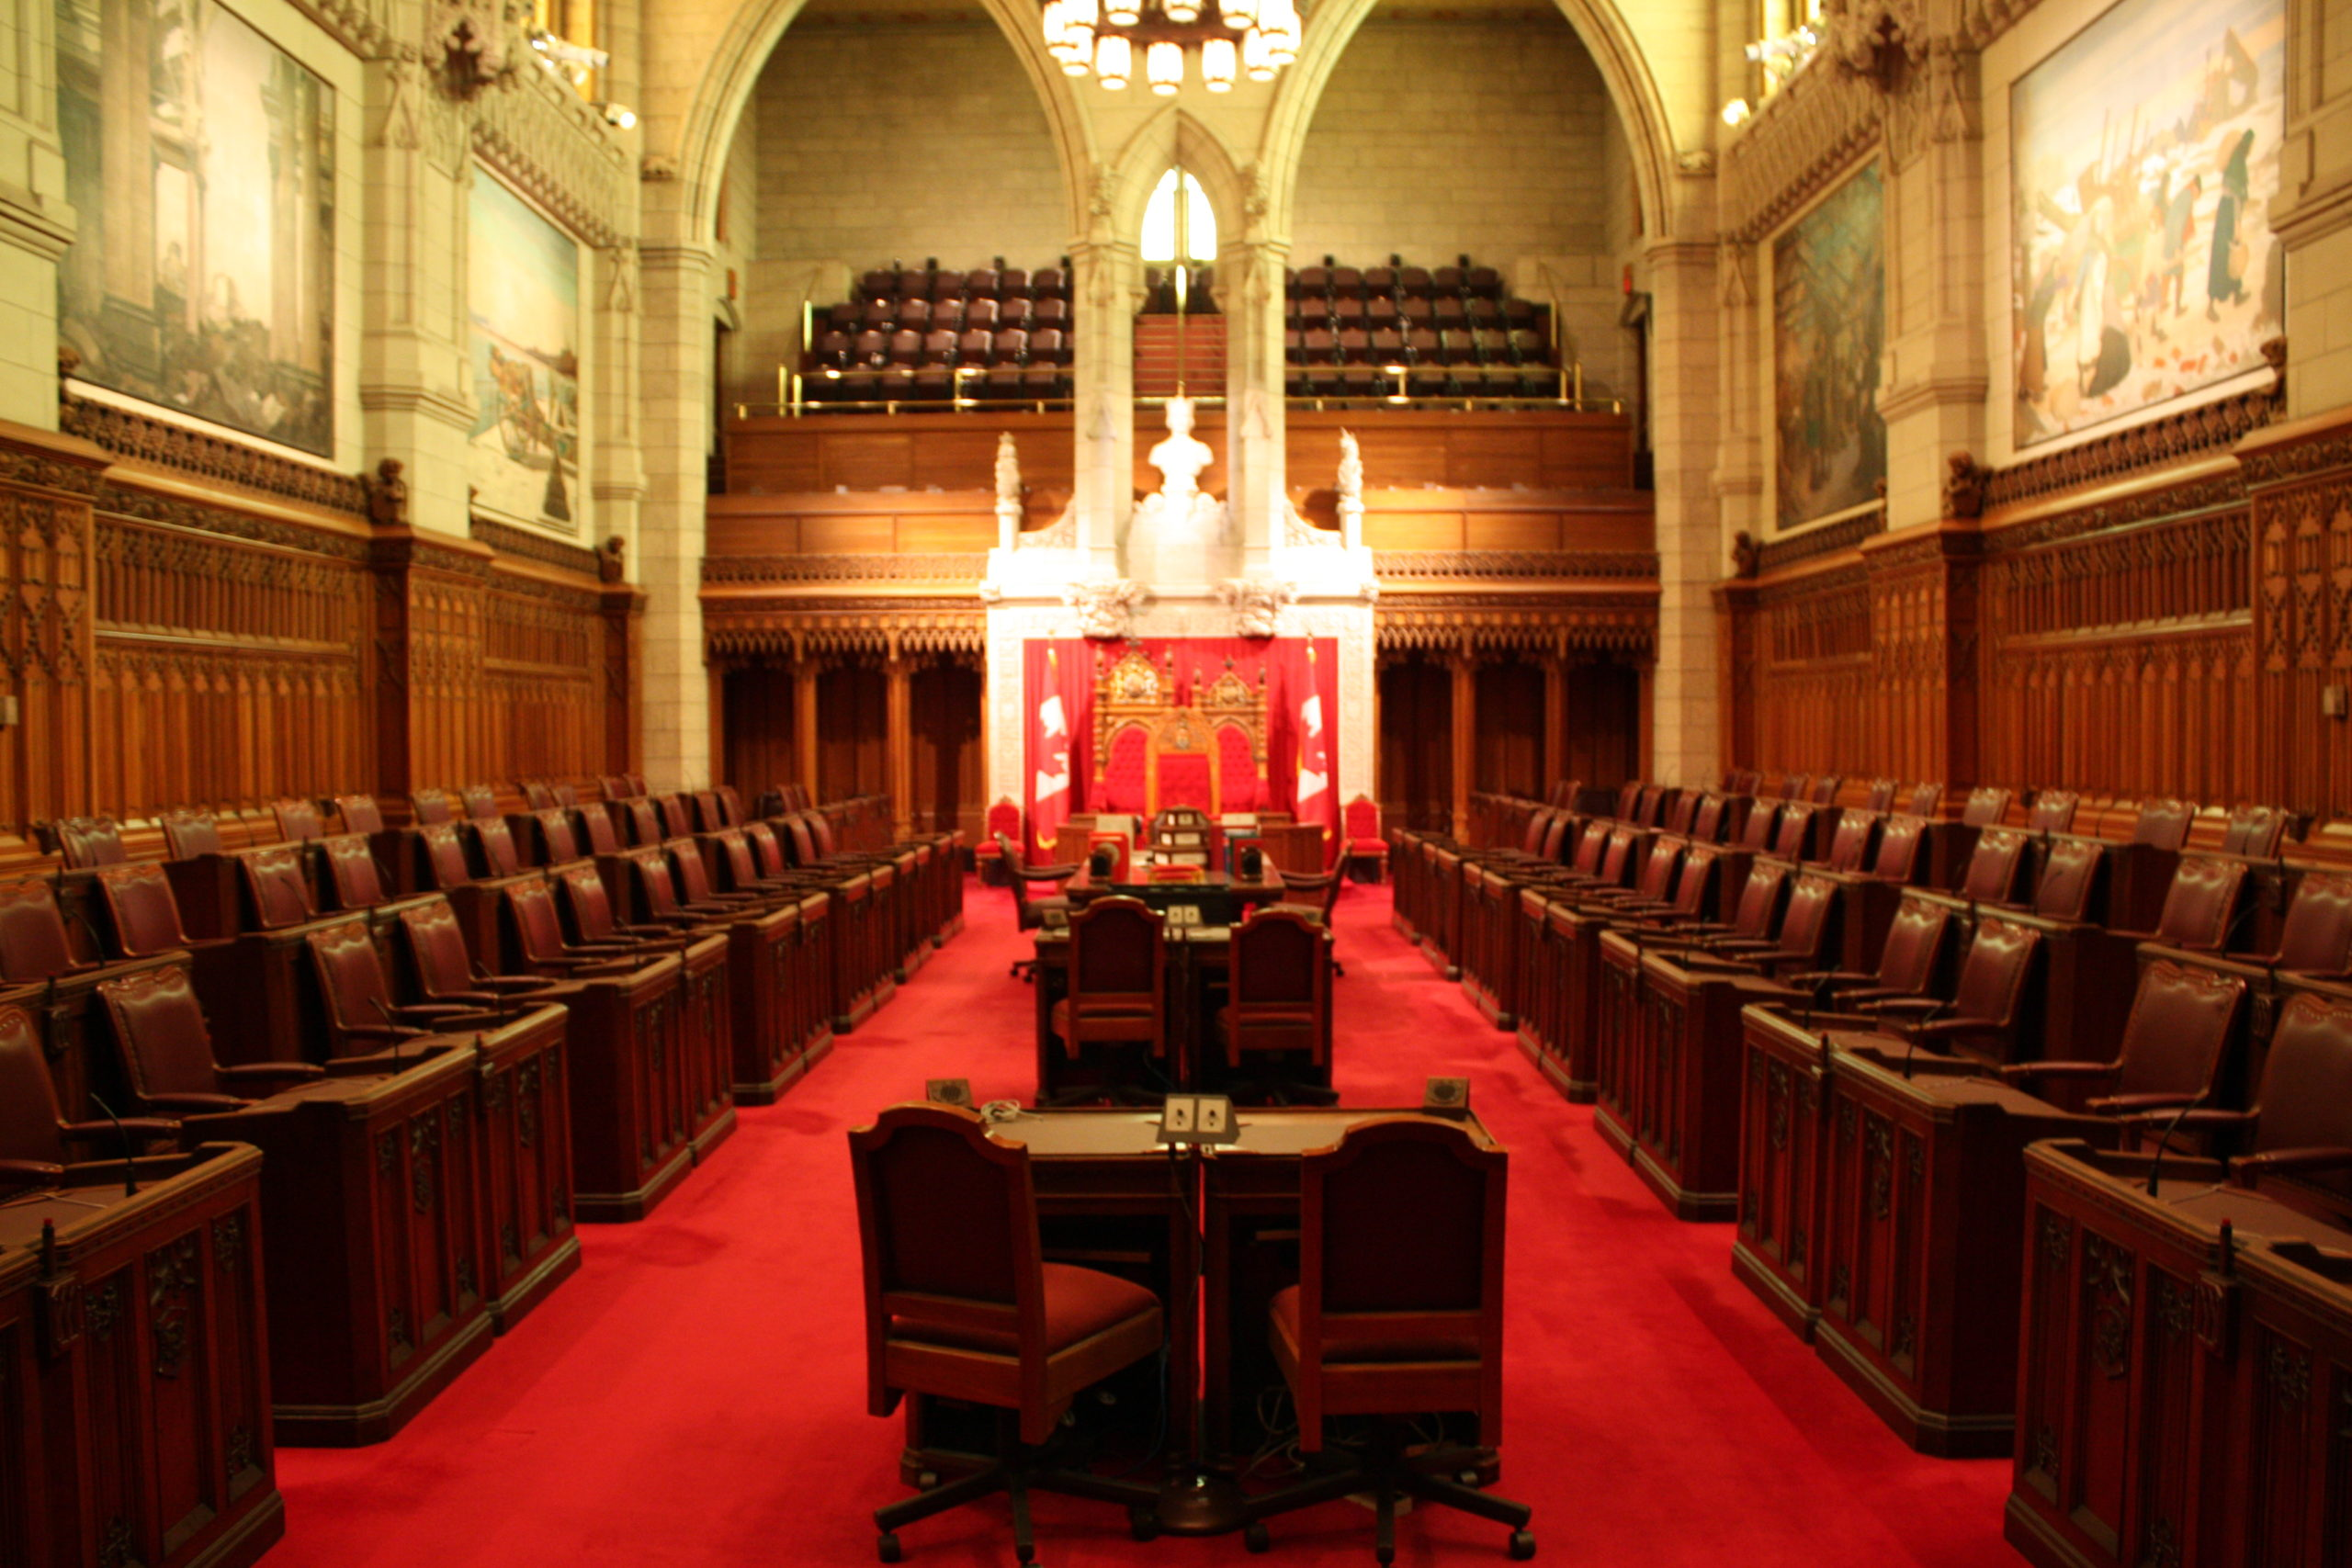 Parliamentary chamber with rows of chairs and desks, a red carpet, and a gallery.